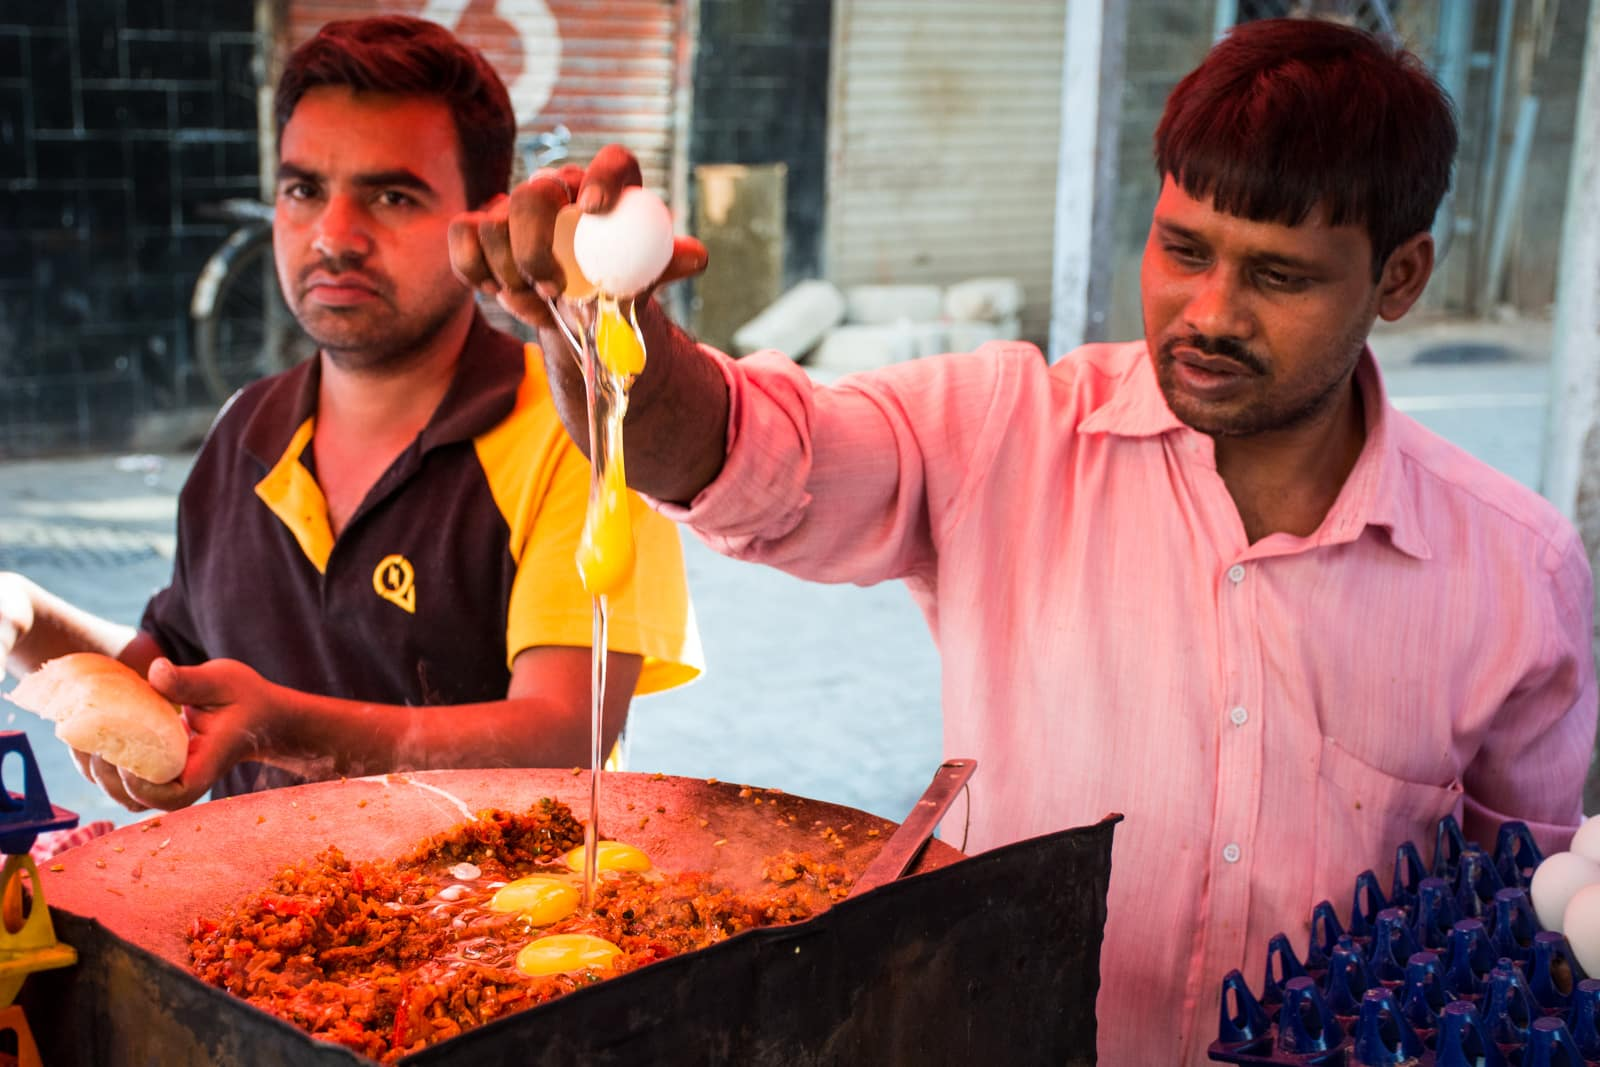 Why we fell in love with India - Pav bhaji cooking on the streets of Mumbai, India - Lost With Purpose travel blog